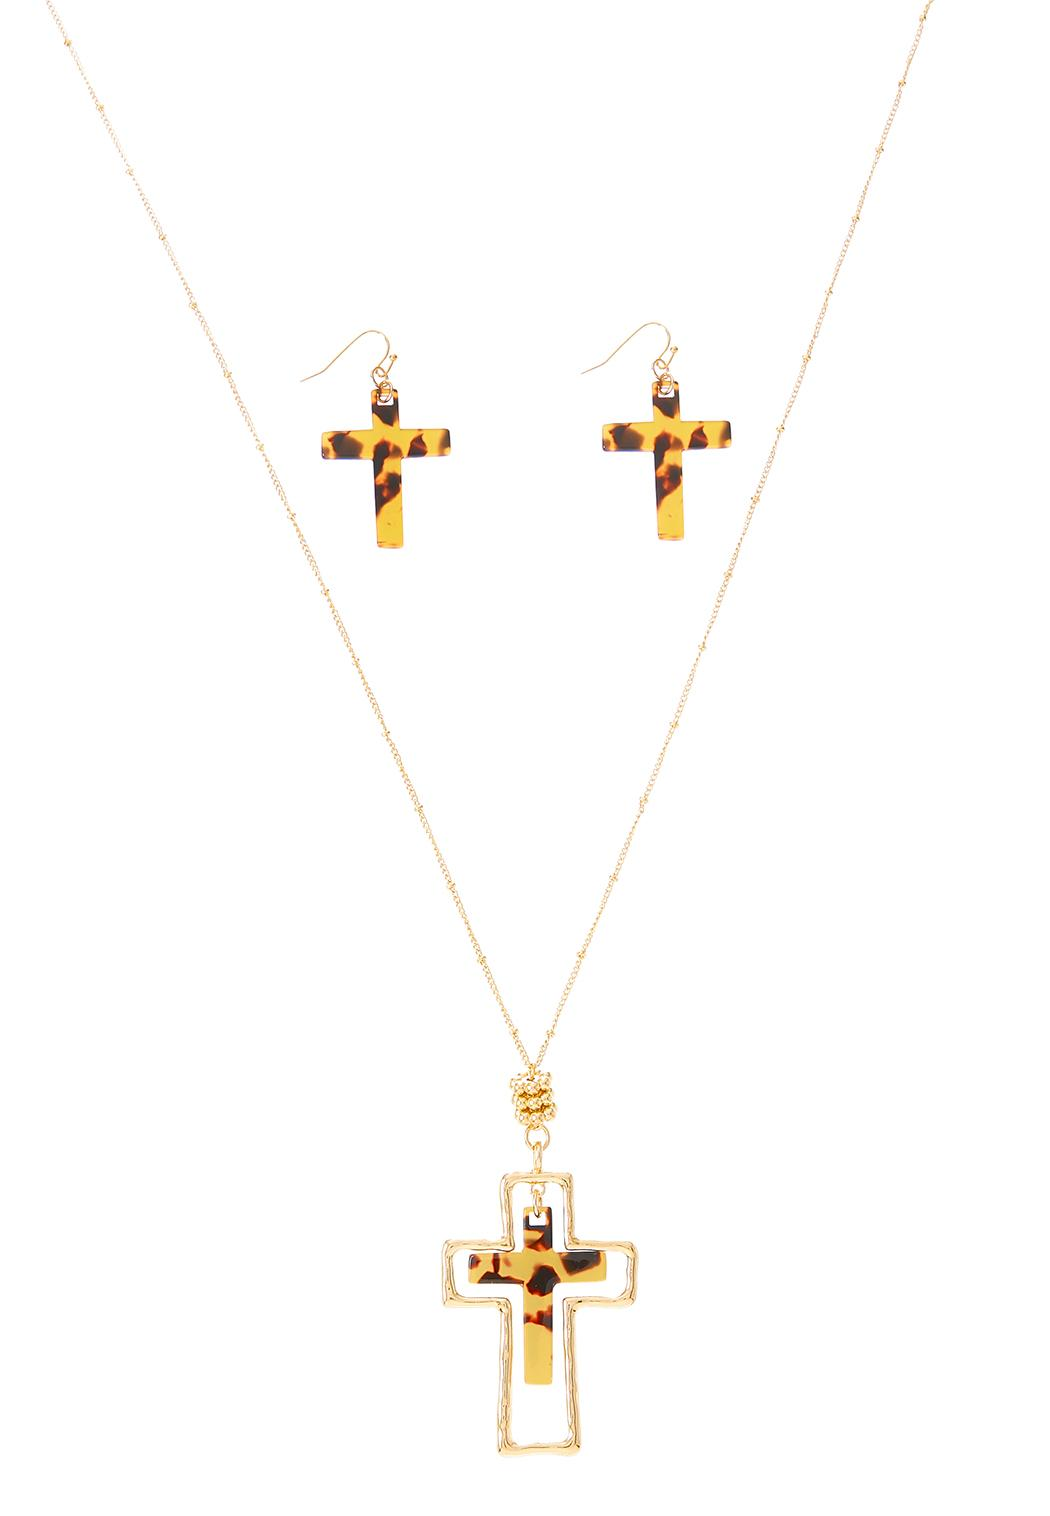 Lucite Cross Necklace Earring Set